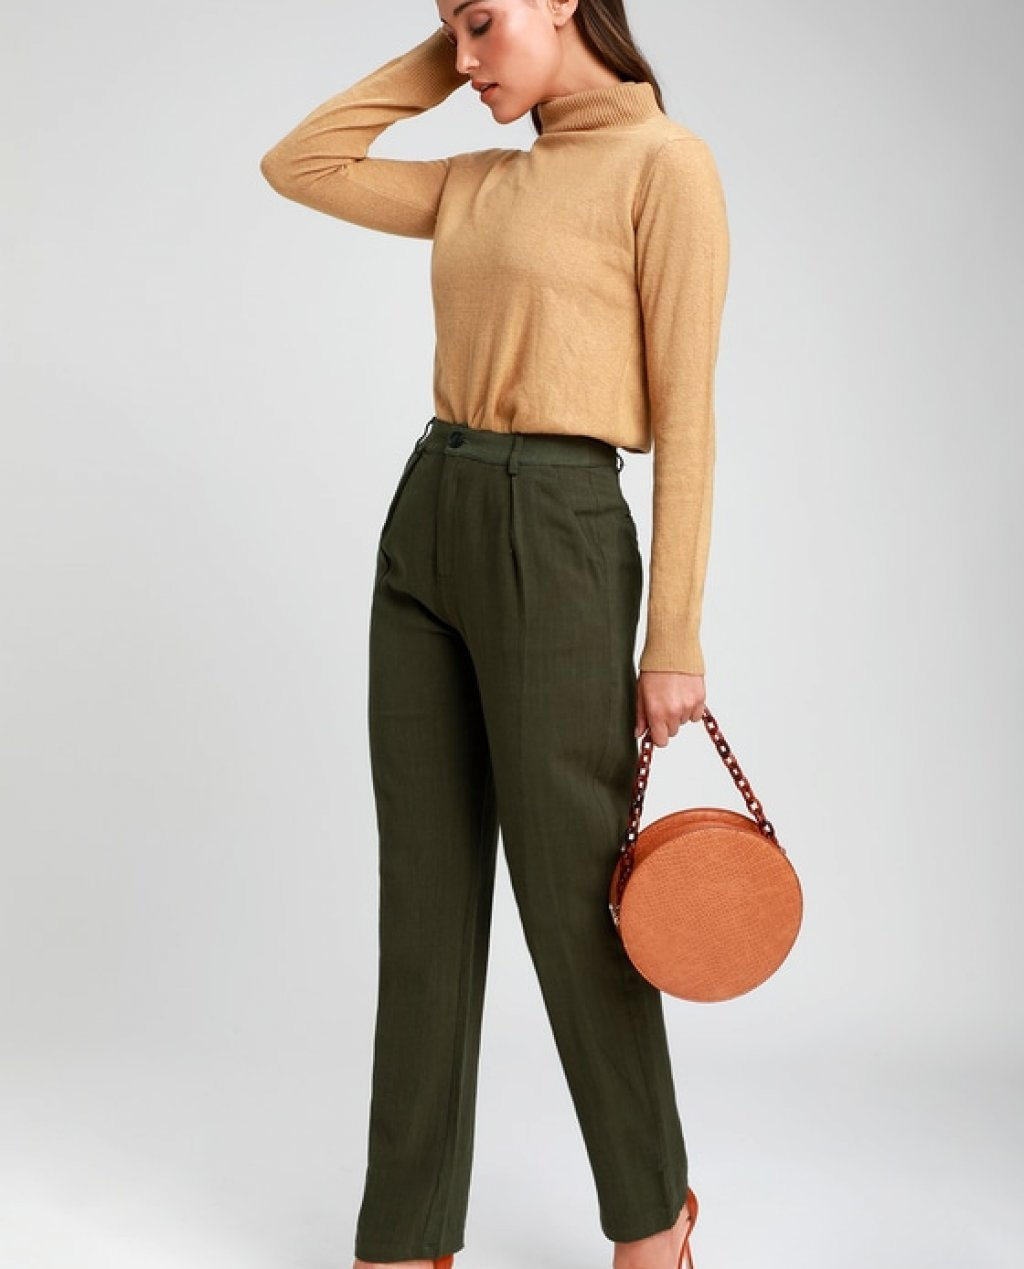 Upside Olive Green Pants